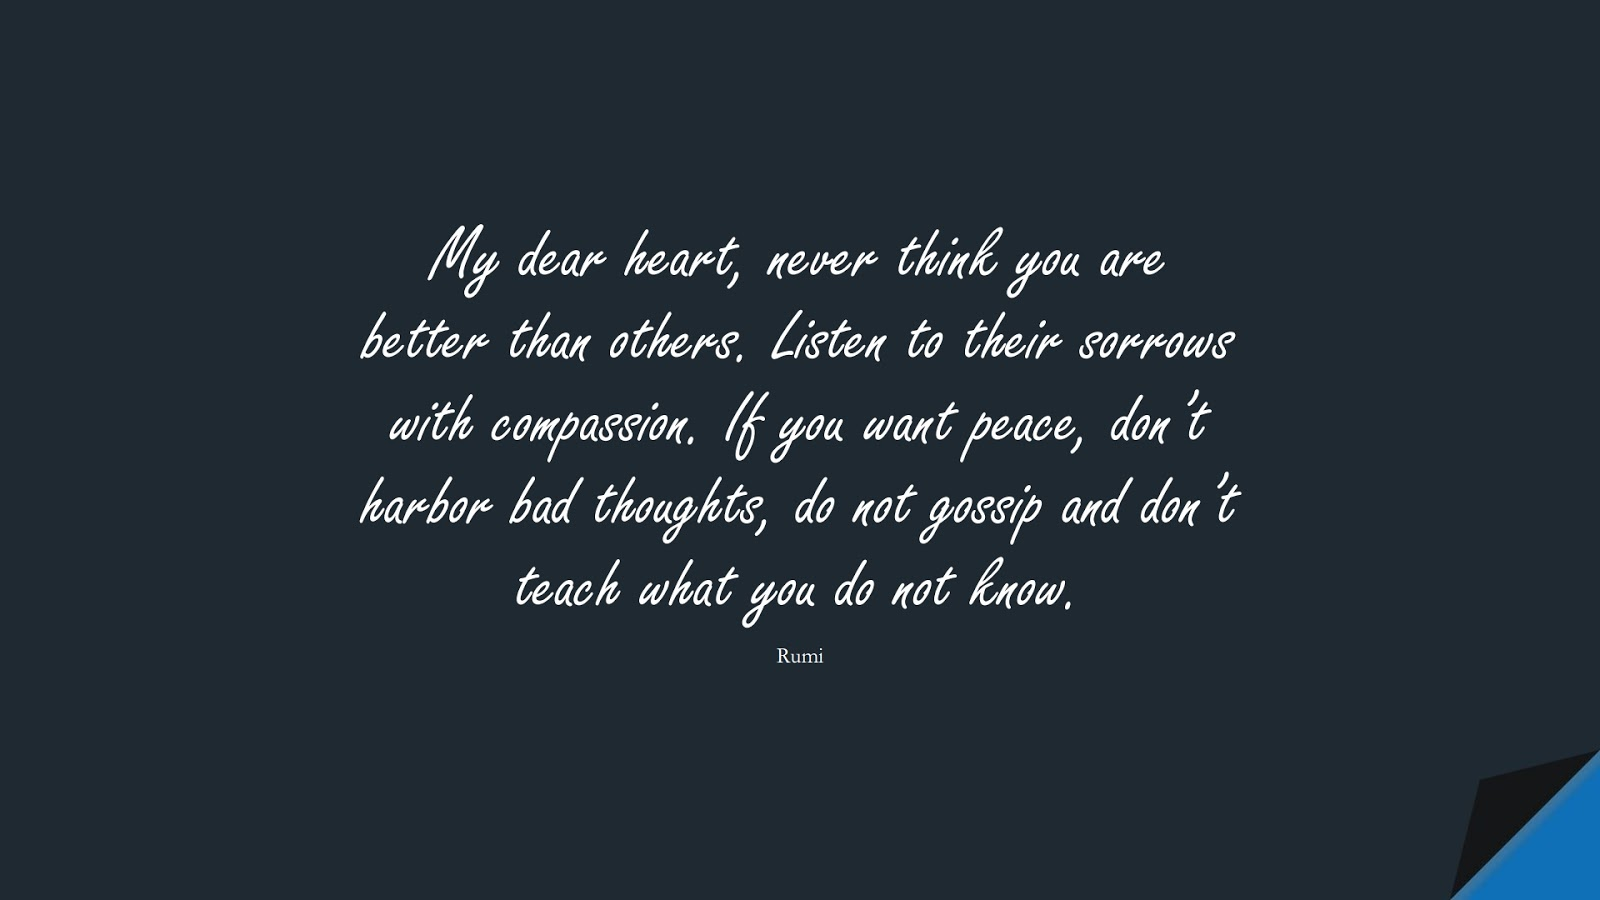 My dear heart, never think you are better than others. Listen to their sorrows with compassion. If you want peace, don't harbor bad thoughts, do not gossip and don't teach what you do not know. (Rumi);  #RumiQuotes